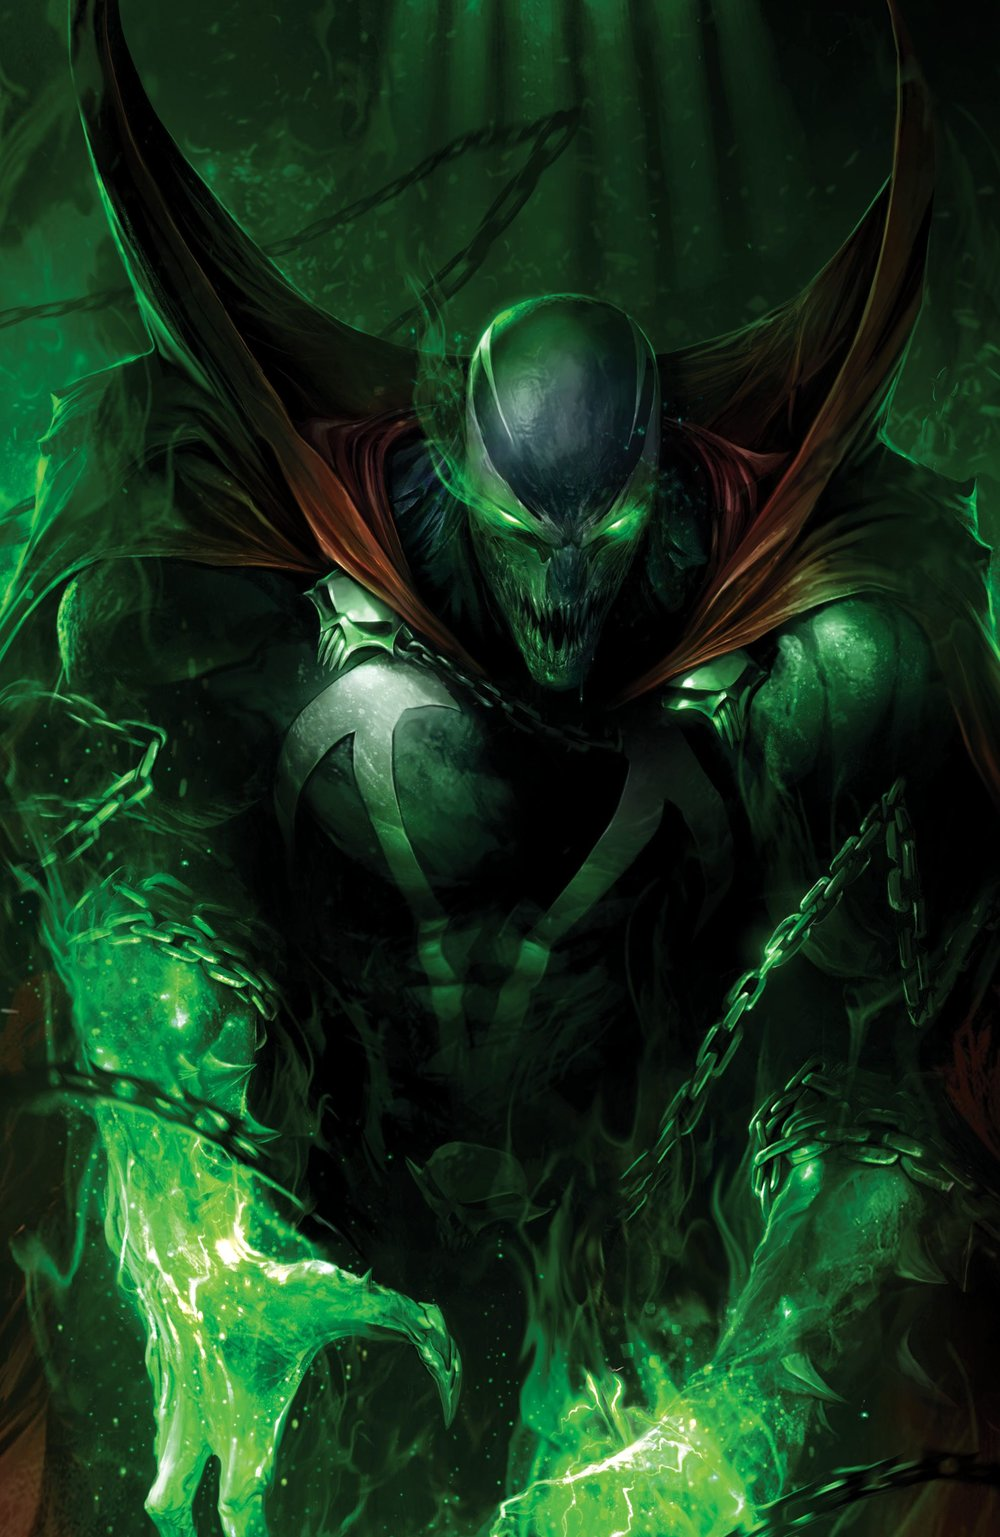 Episode 28 Variant of the Week! - (Image) Spawn #284 (Mattina Virgin Variant)Cover by Francesco MattinaWritten by Todd McFarlaneIllustrated by Jason Shawn AlexanderDid the Content Match the Drapes? - UNR